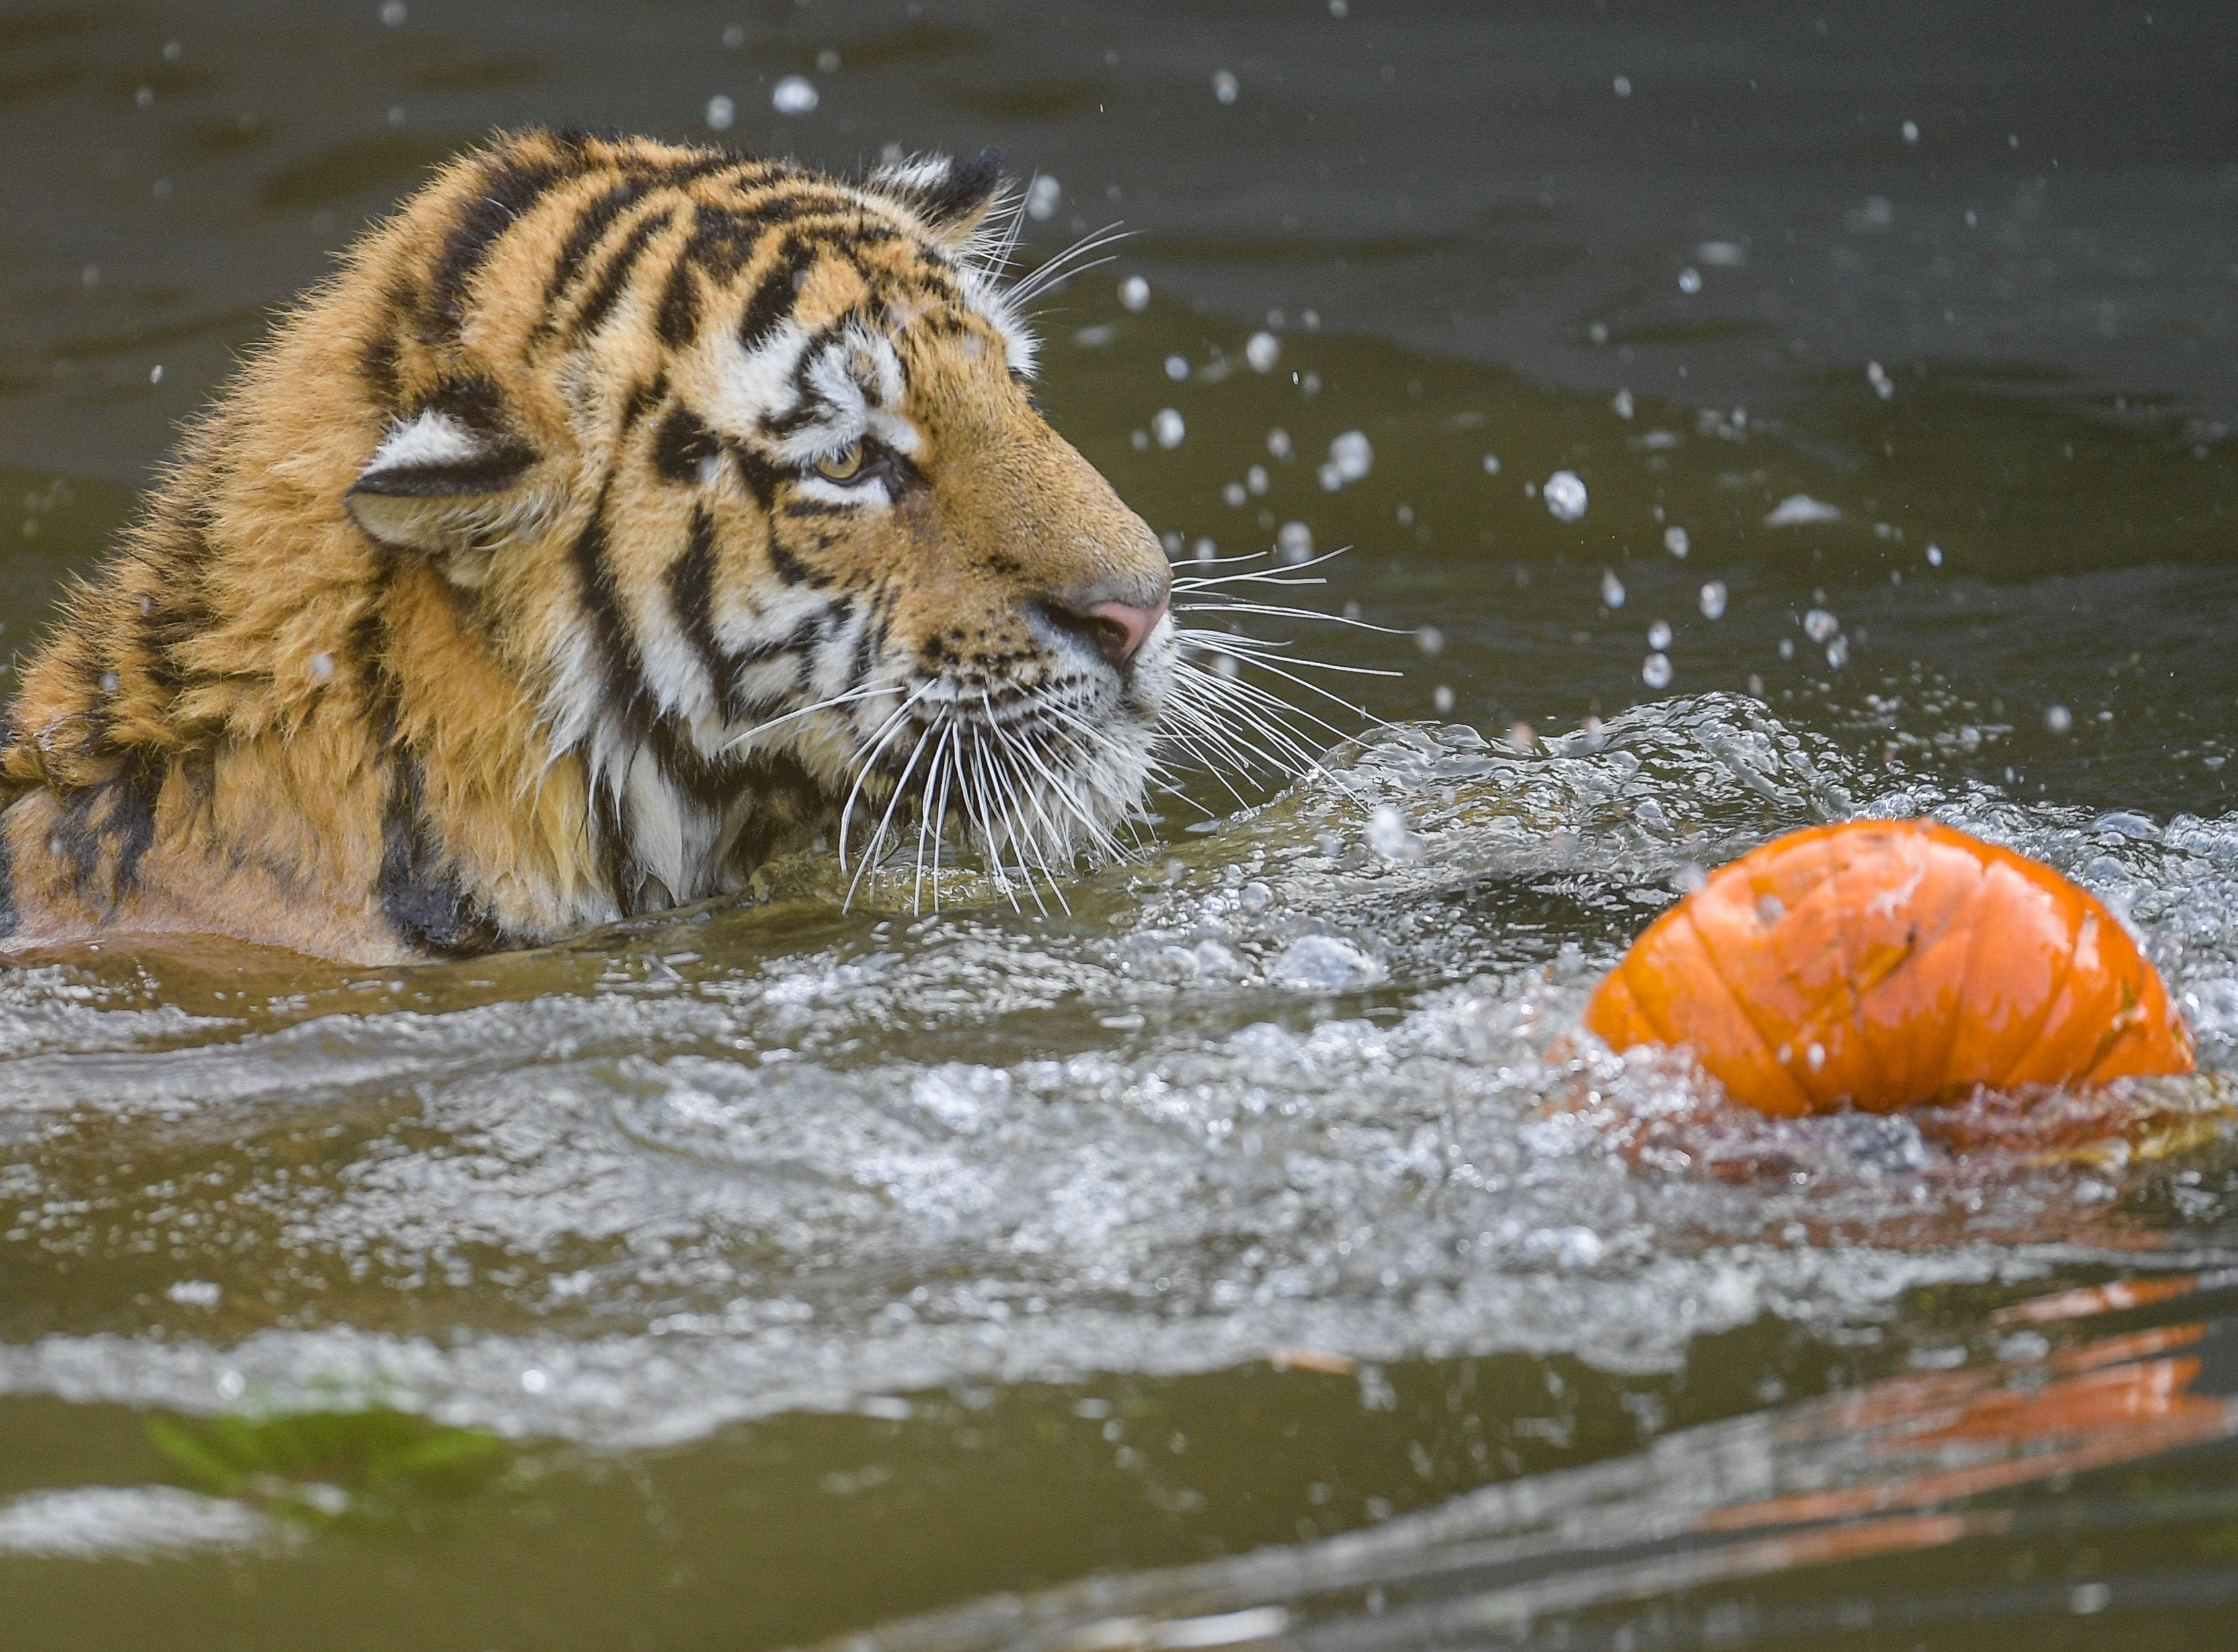 A Siberian tiger swims in its pool to reach a pumpkin filled with meat on September 27, 2018 at the Tierpark Hagenbeck zoo in Hamburg, northern Germany. (Photo by Axel Heimken / dpa / AFP) / Germany OUTAXEL HEIMKEN/AFP/Getty Images ORIG FILE ID: 581774509